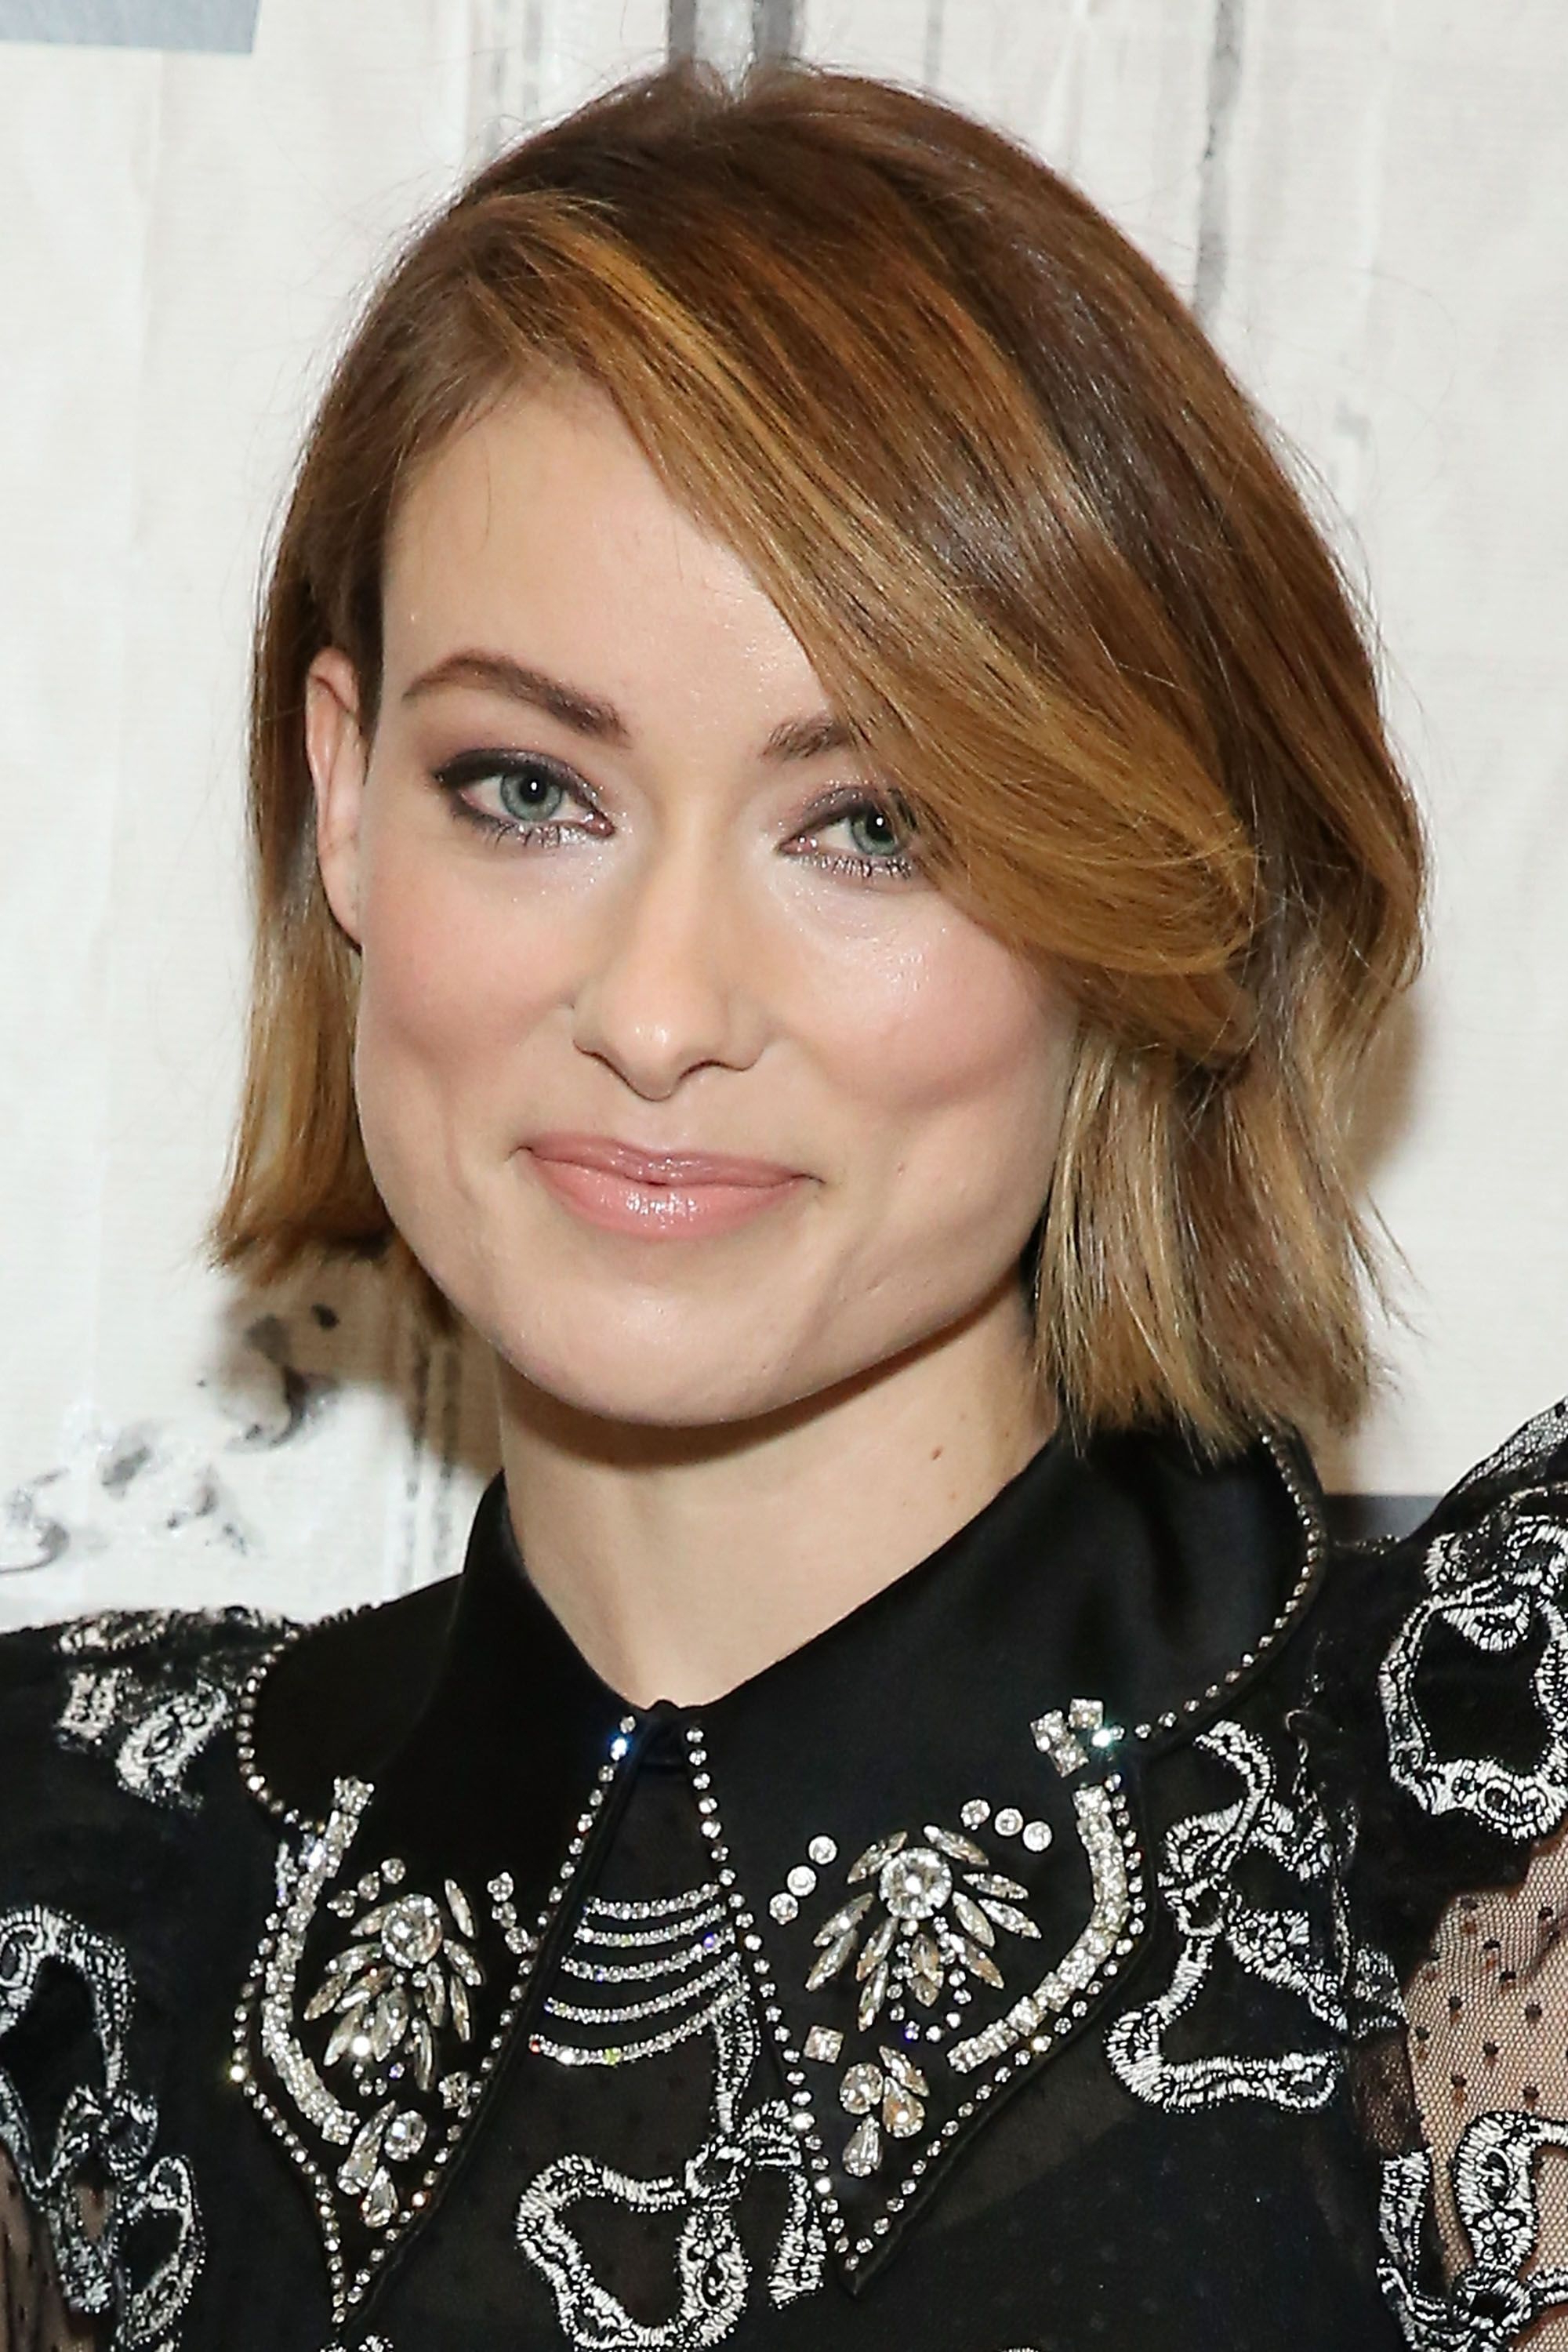 The 7 Best Hairstyles For Square Face Shapes With Regard To Short Haircuts For Square Face Shape (View 22 of 25)